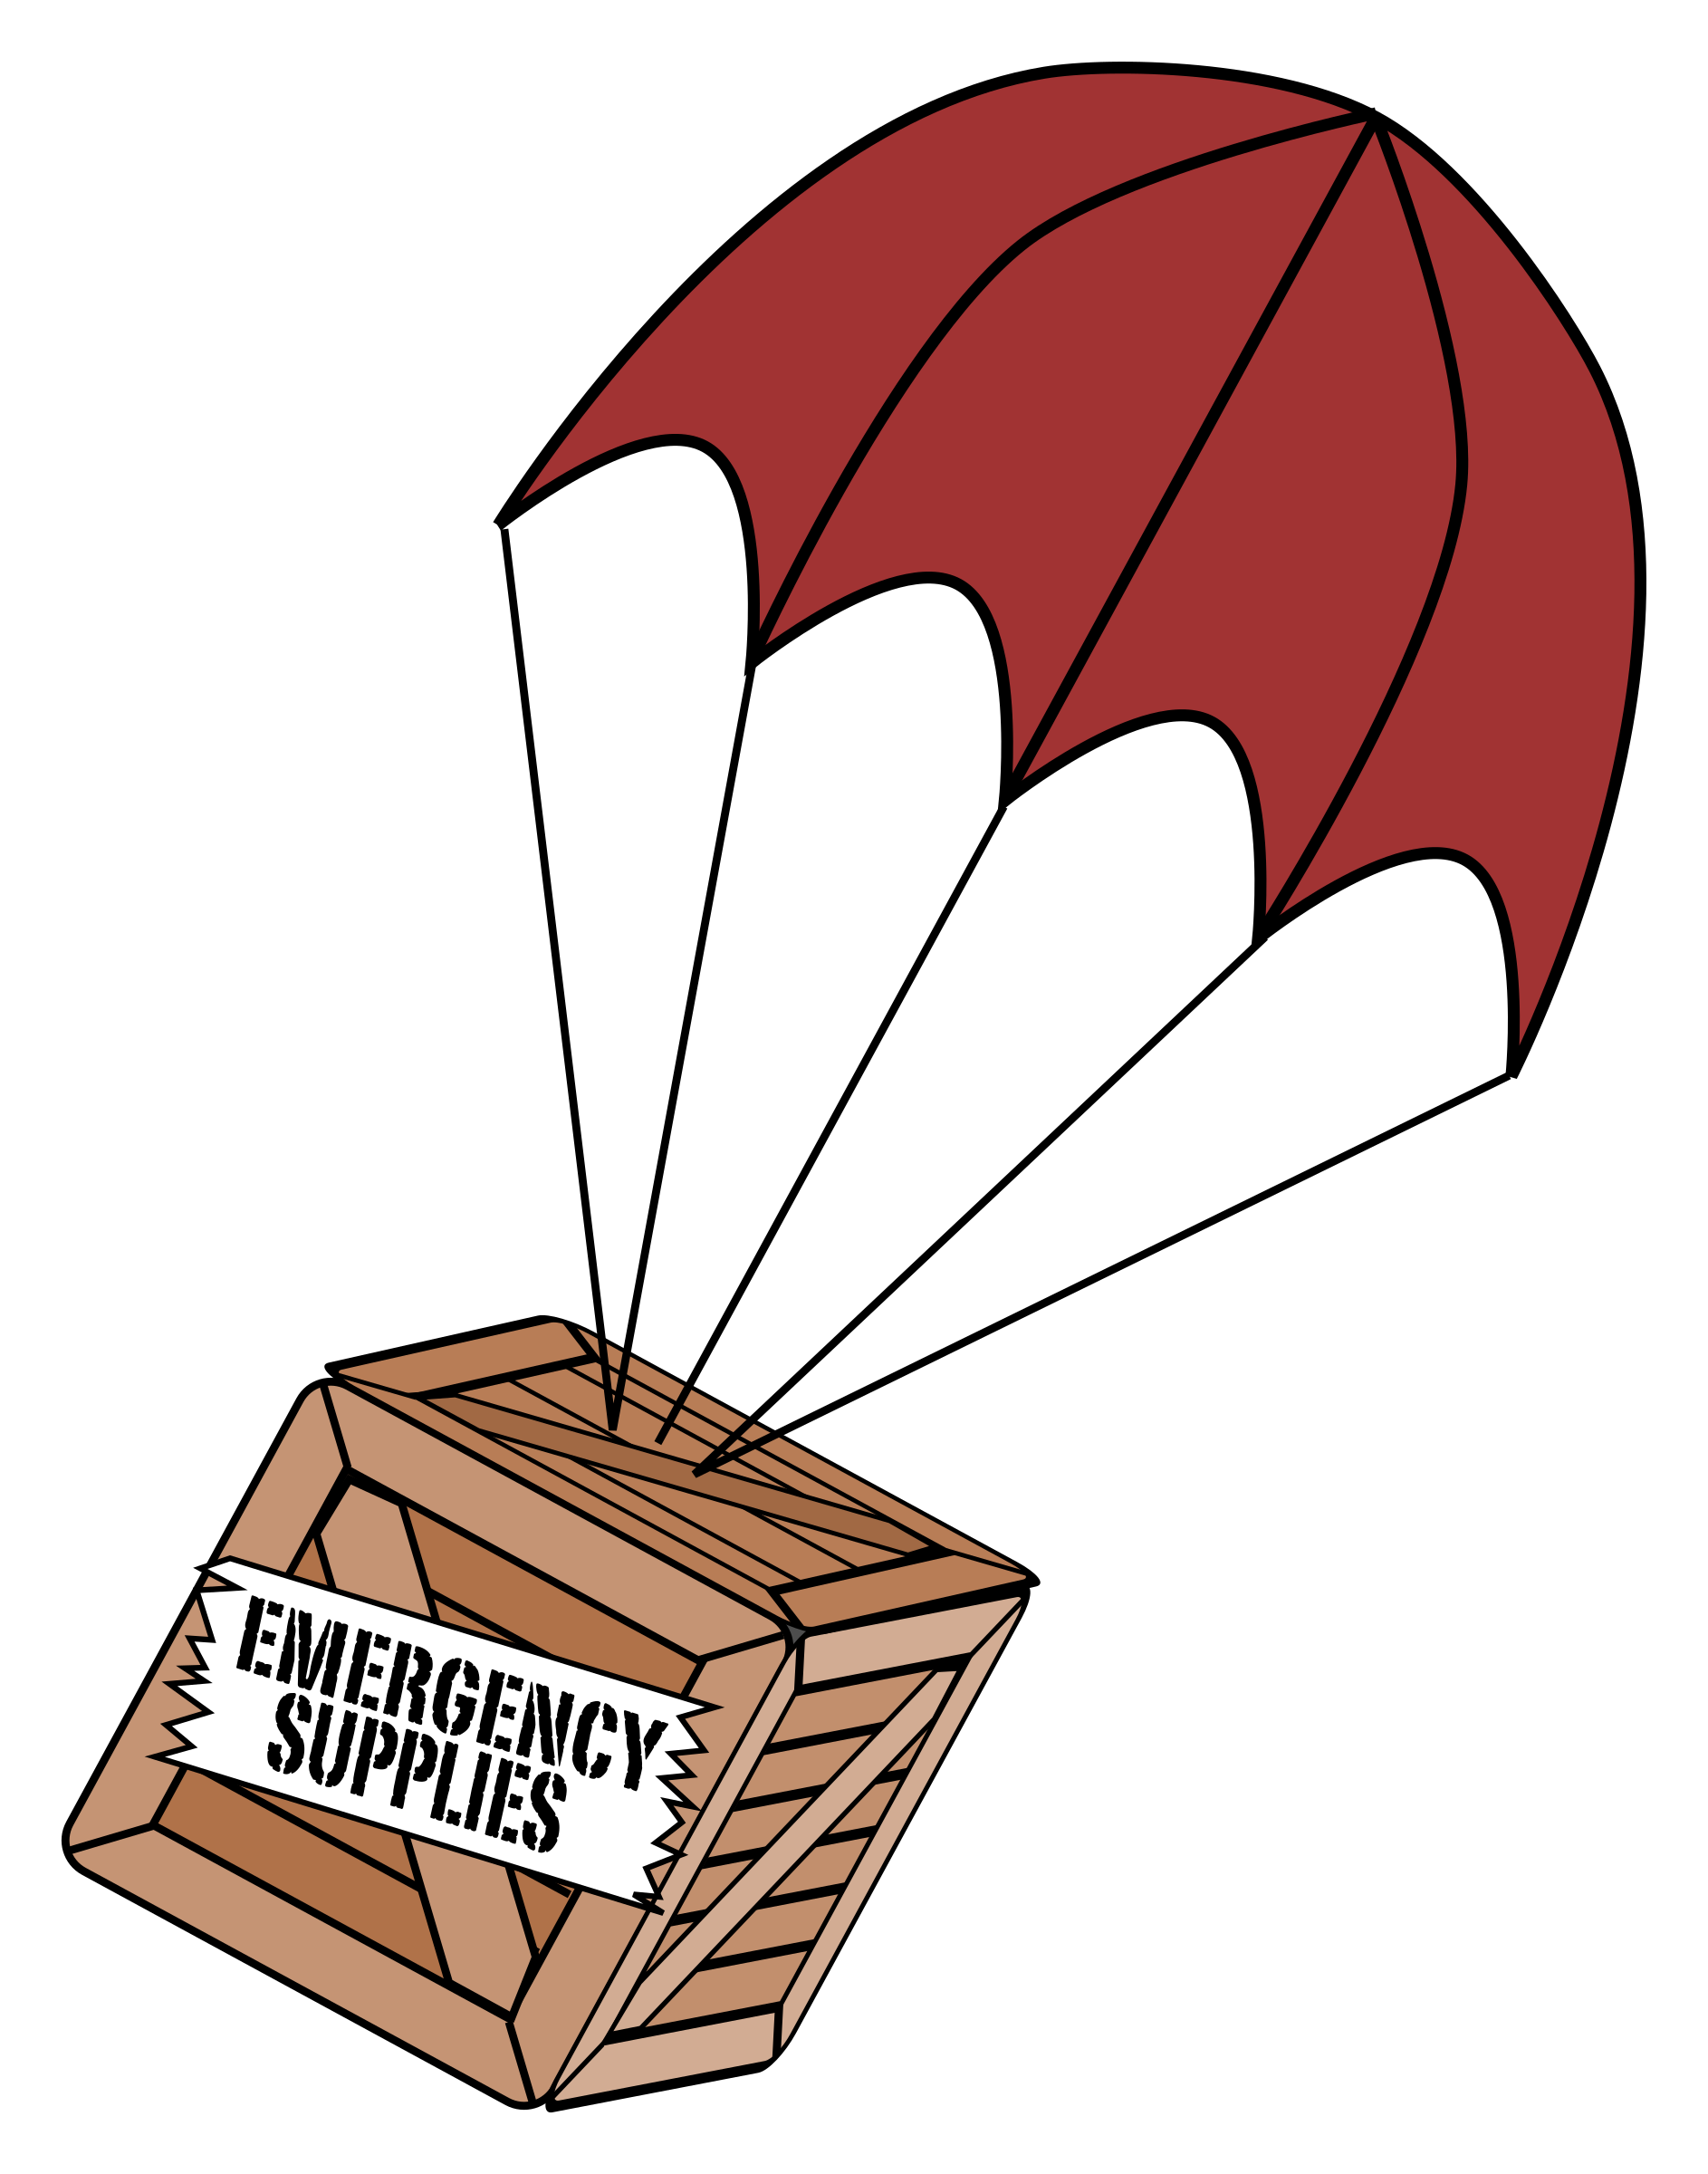 Emergency Supplies Boxchute by j4p4n